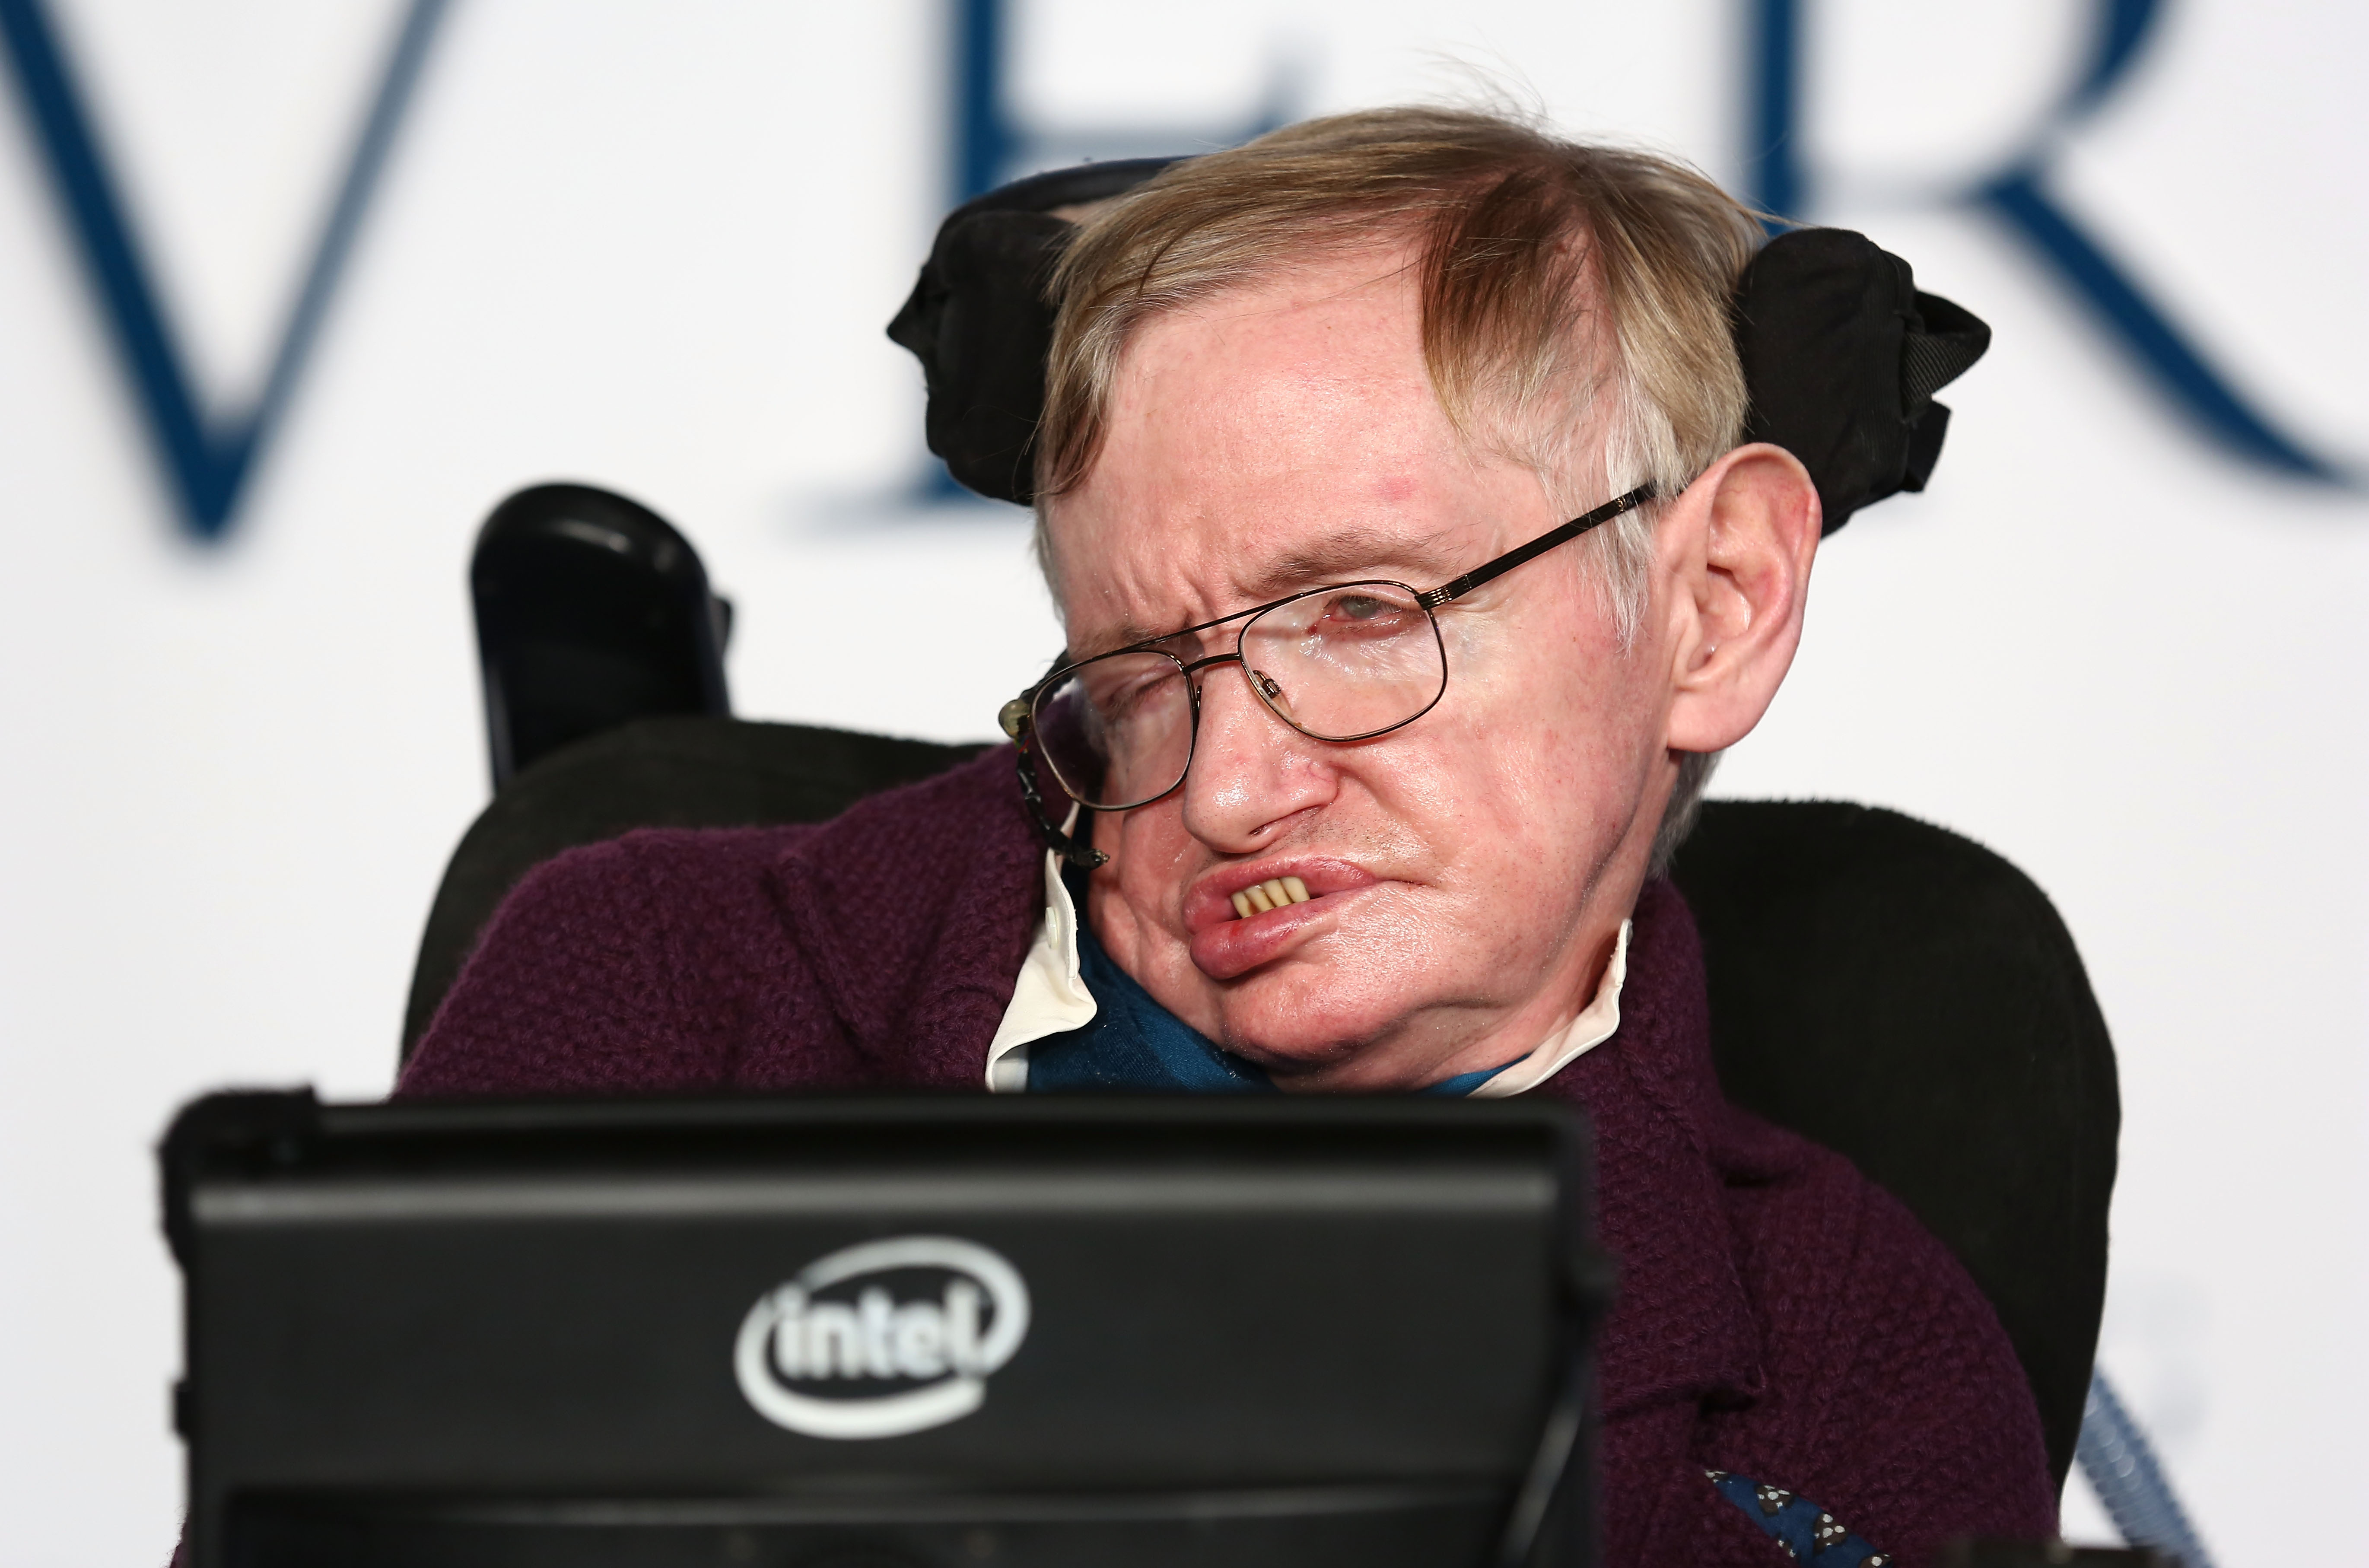 Stephen Hawking made a grim warning about the future last year